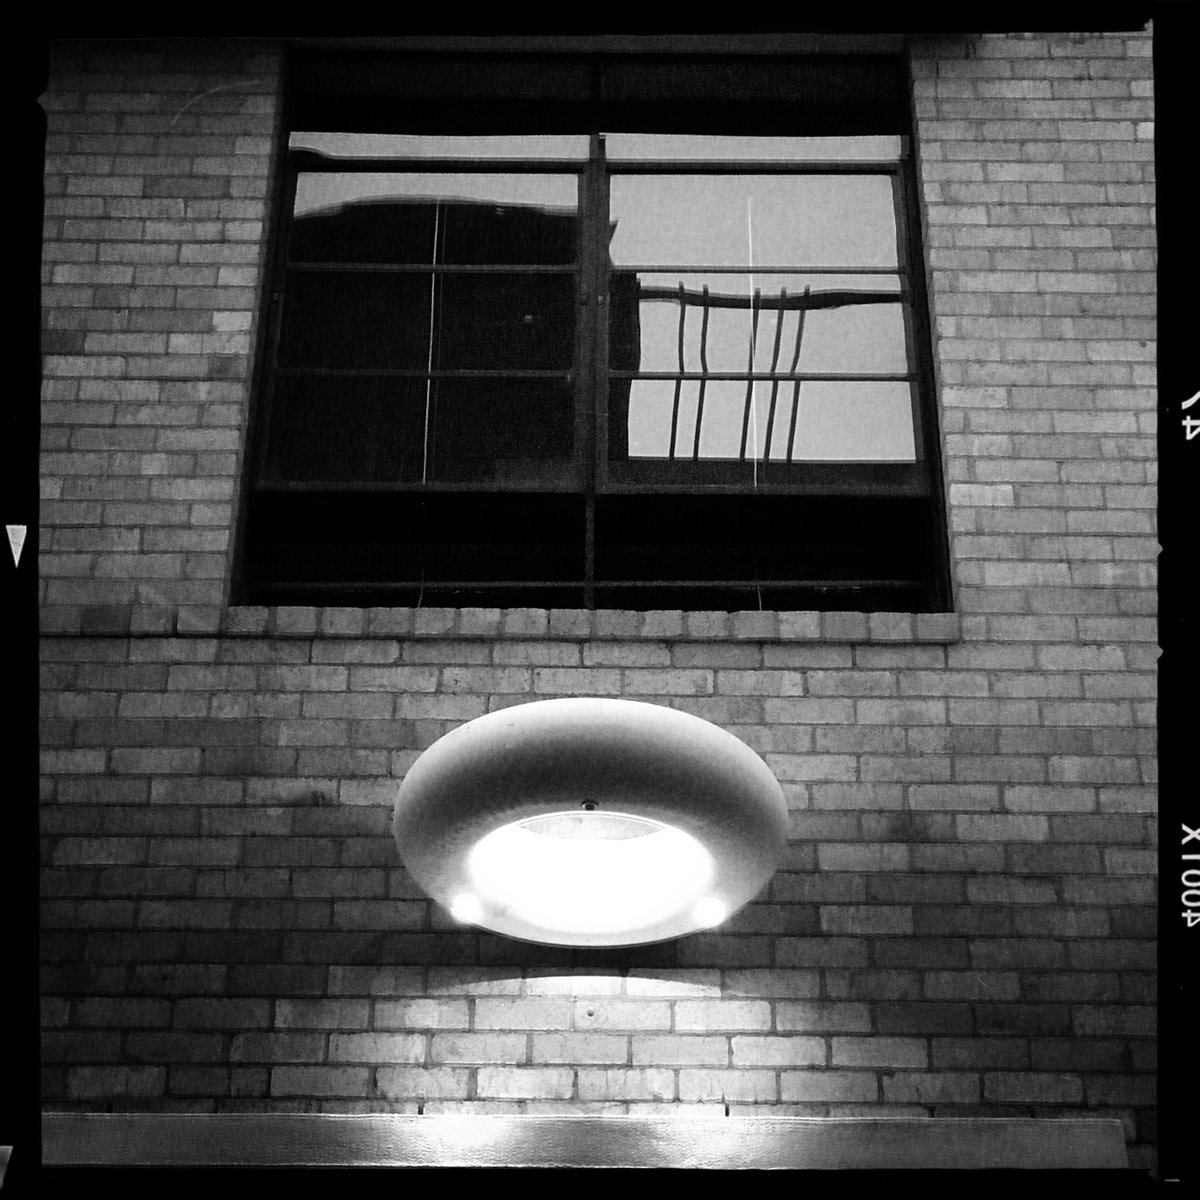 Cremorne UFO 🛸 . #LookUp #diversions #reflections #lights #windows #Hipstamatic https://t.co/DUH3dGvkeP